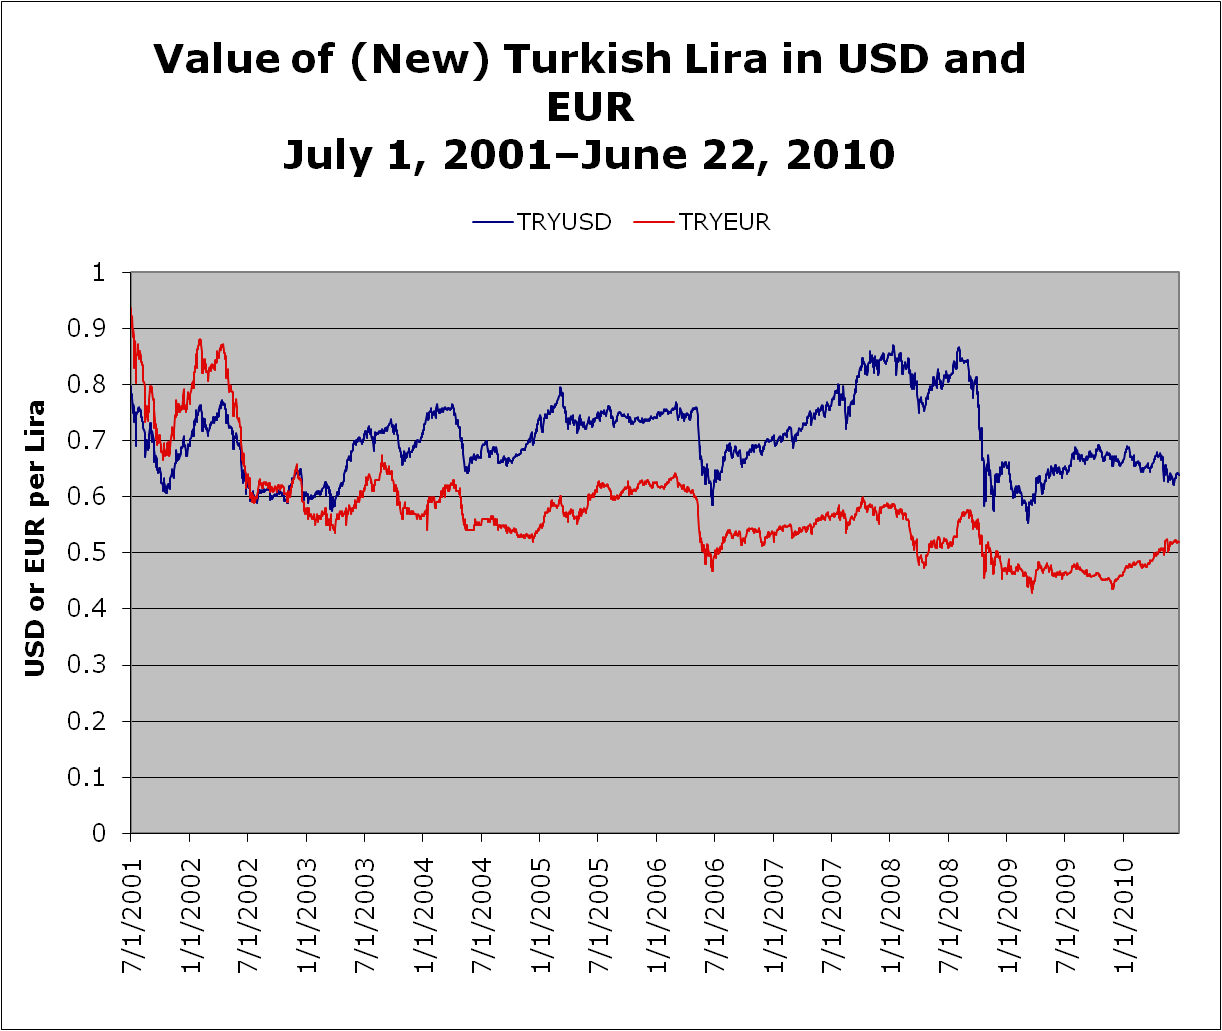 Value of (New) Turkish Lira in USD and EUR